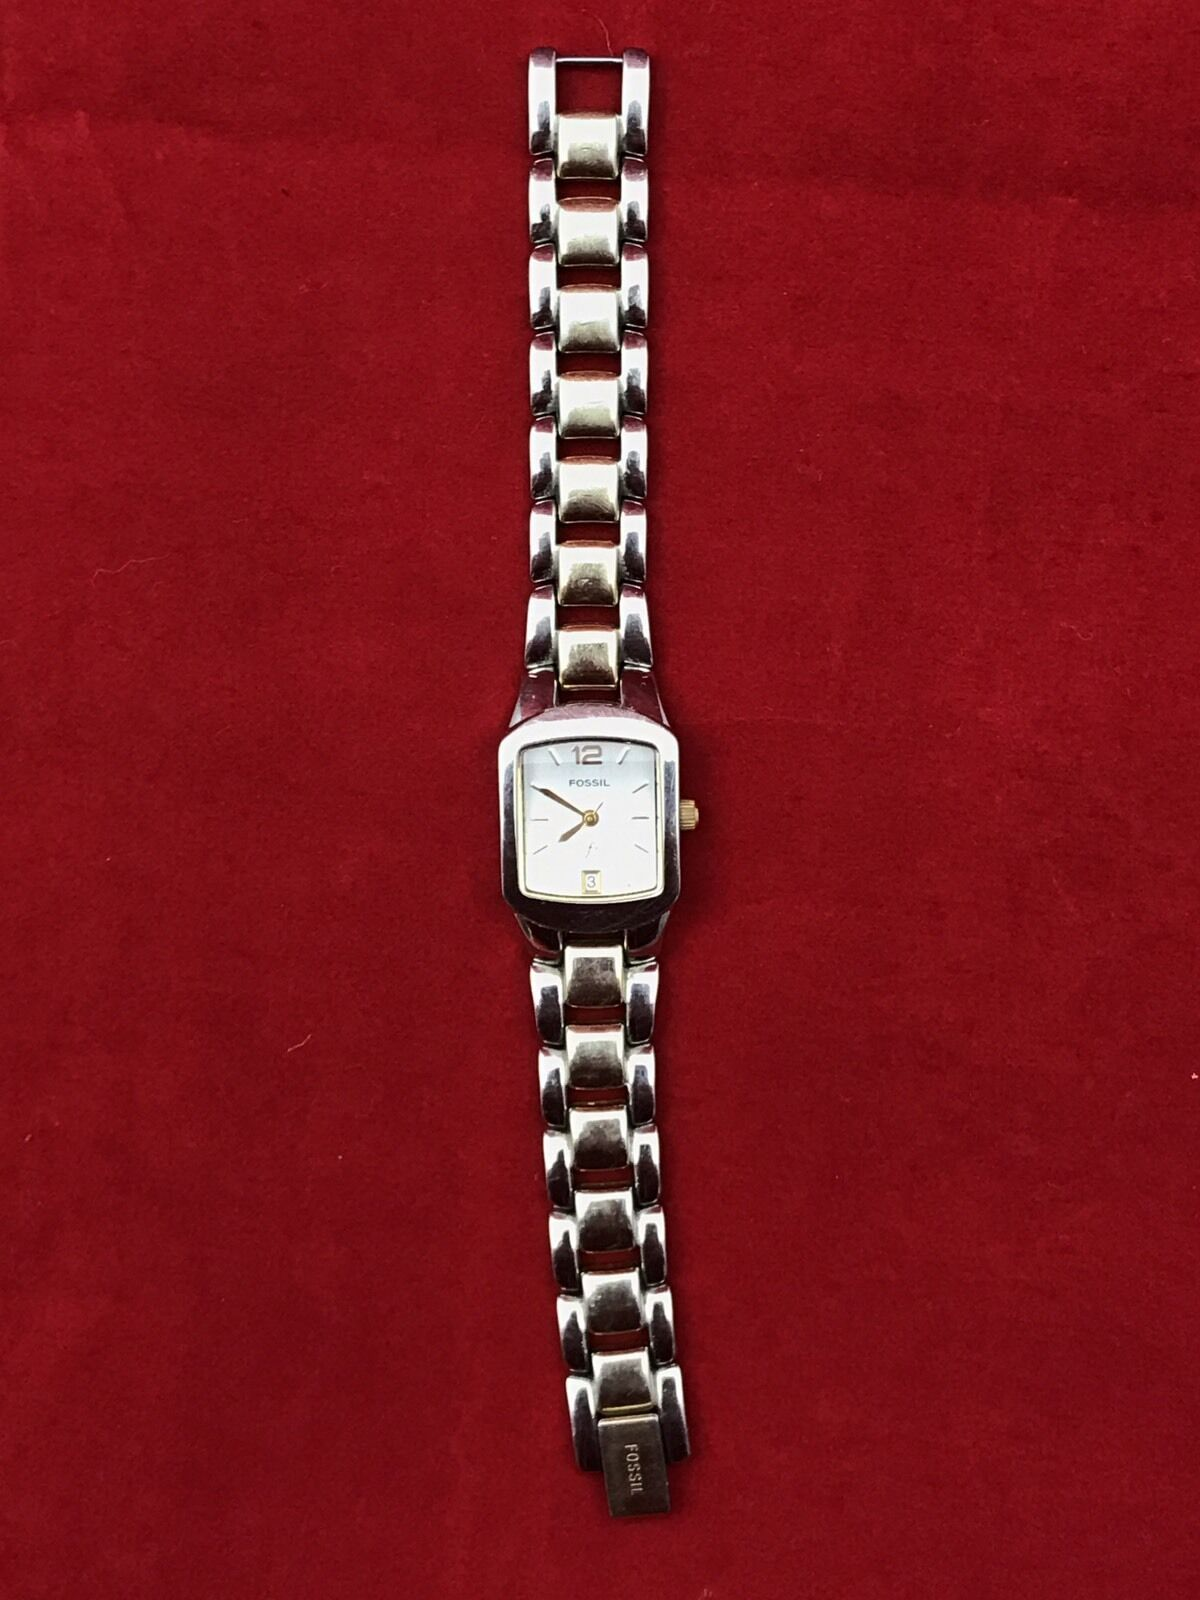 Fossil F2 Womens Two Tone Stainless Steel Watch Es9666 1250 Virginia And Acetate Es 3918 1 Of 4only Available